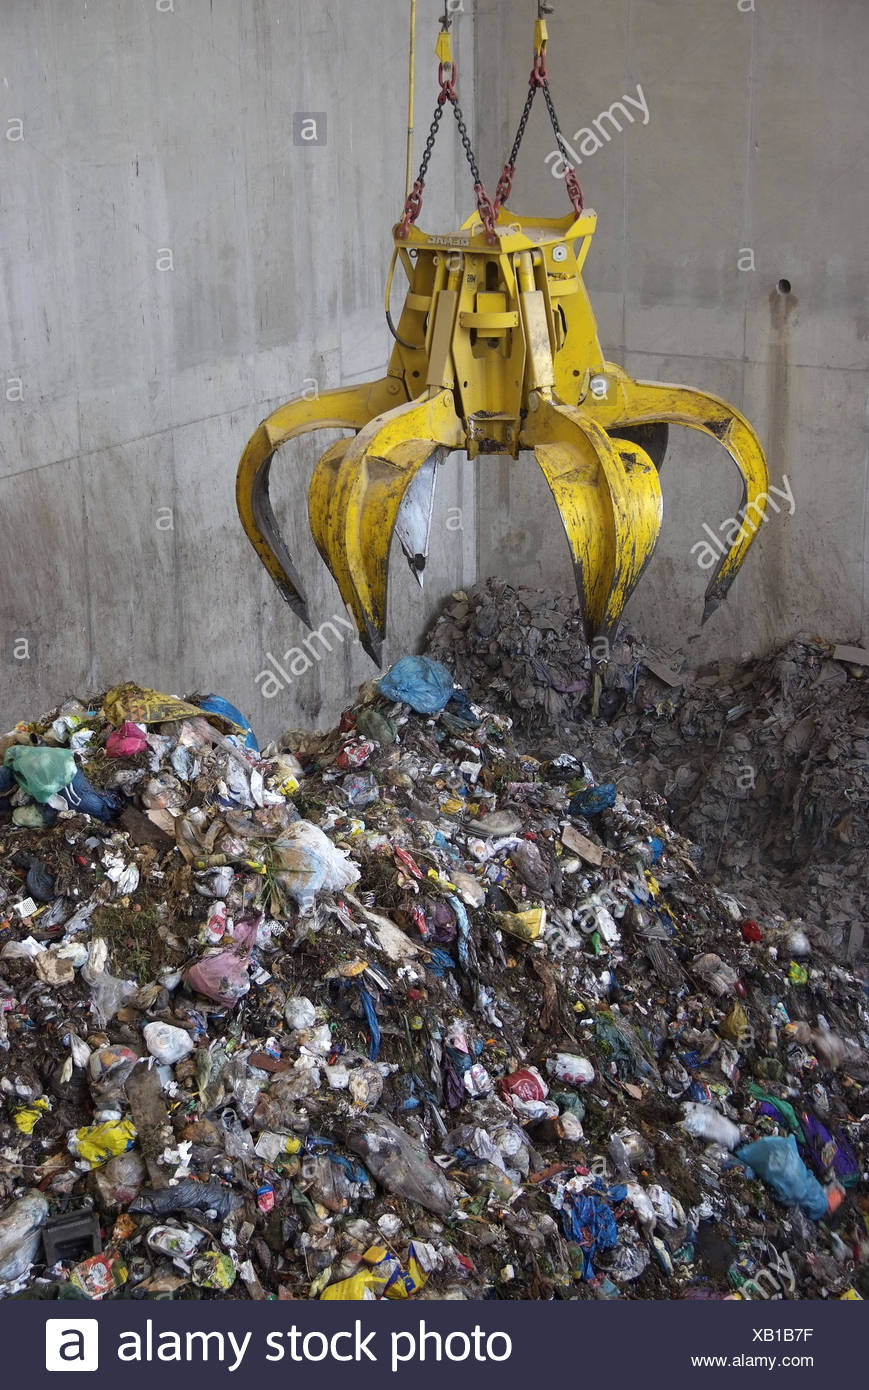 Garbage depot, claw arm, - Stock Image